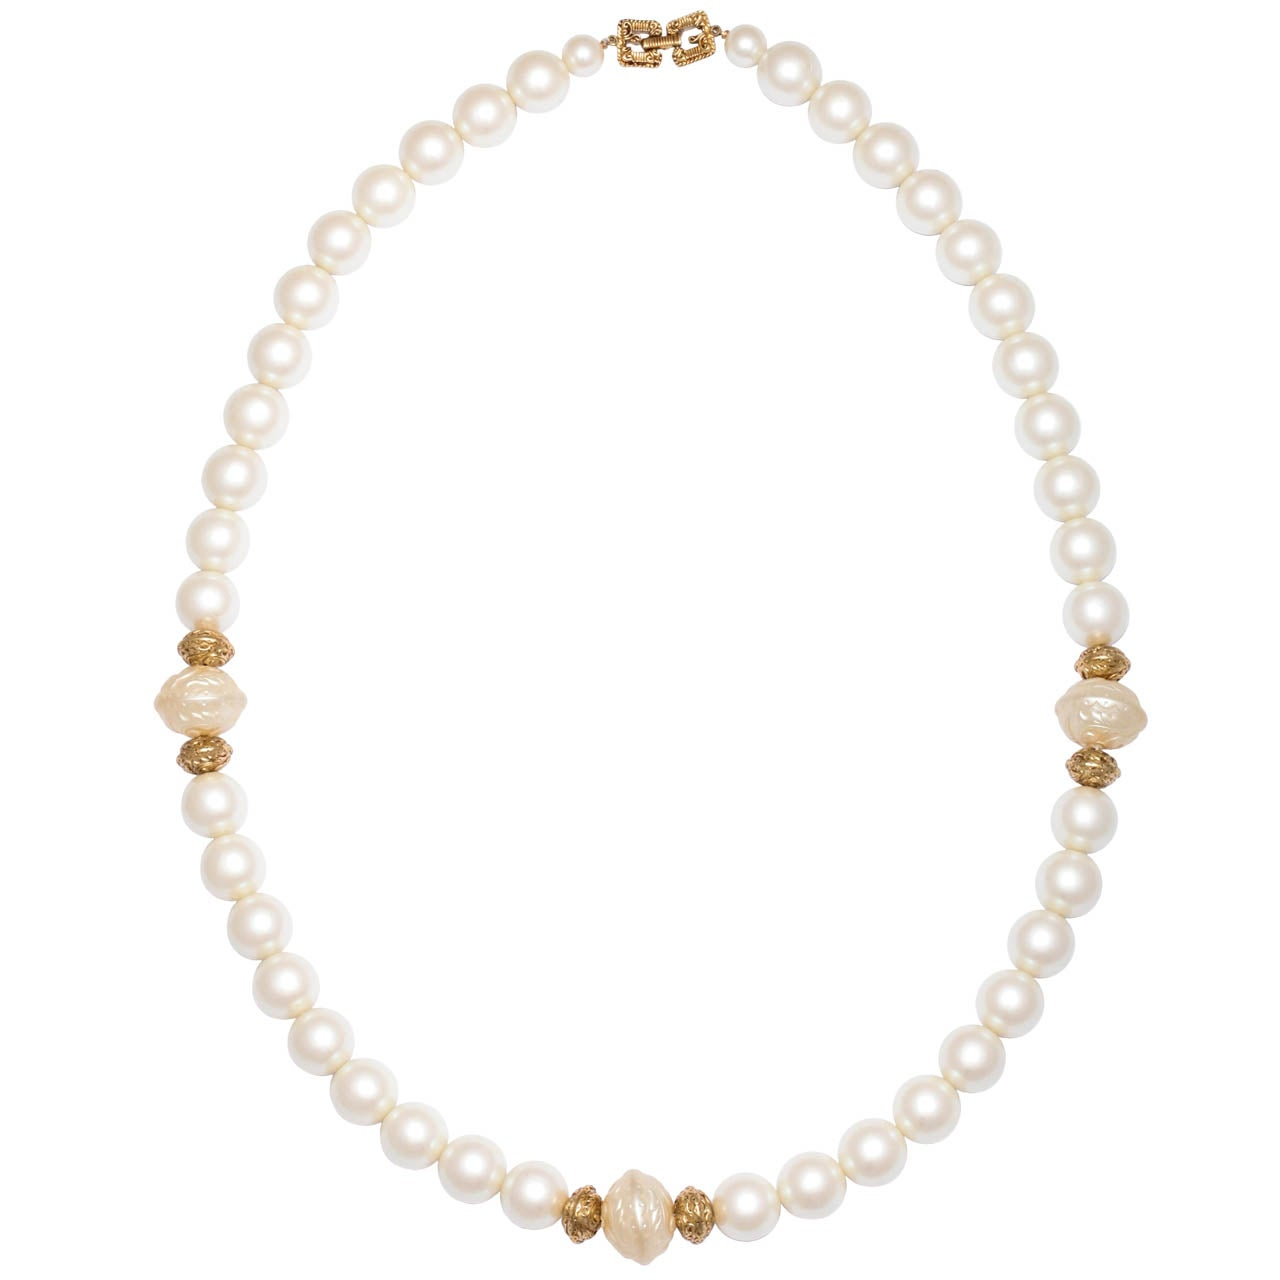 Chanel style Large Faux Pearl Necklace